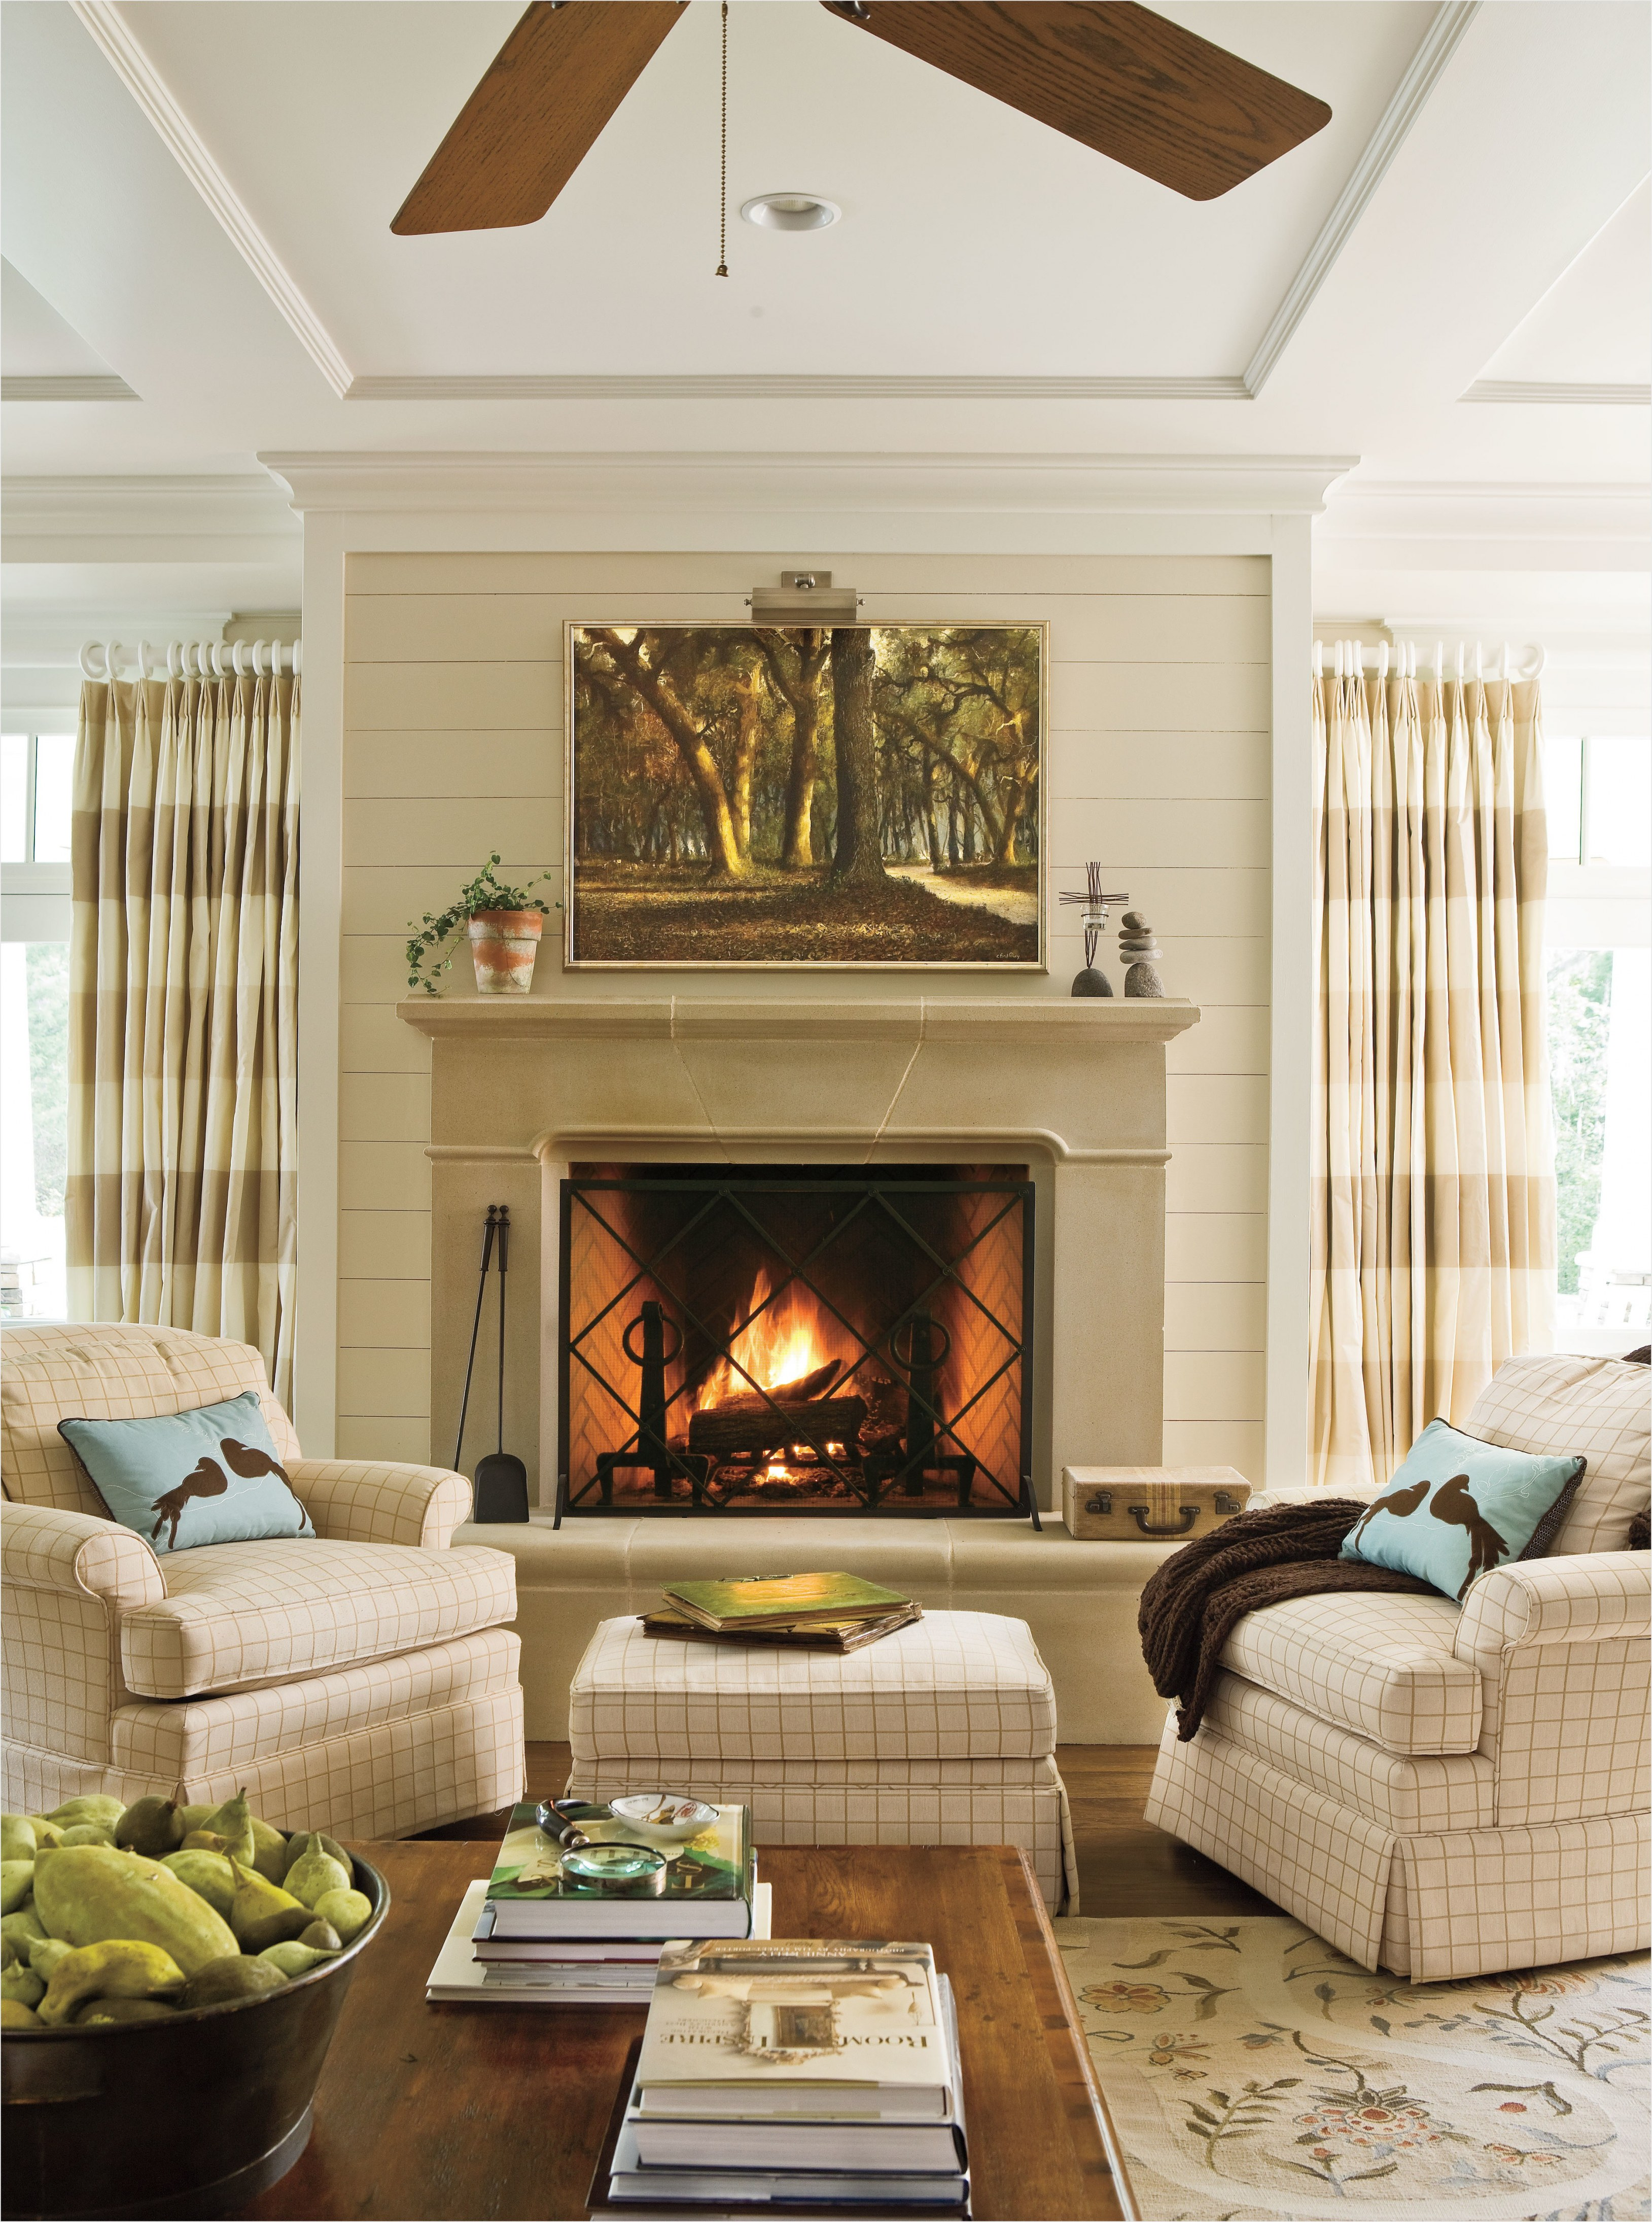 Fireplace Curtain Inspirational Home Decoration Ideas Modern Fireplace Designs Inspirational